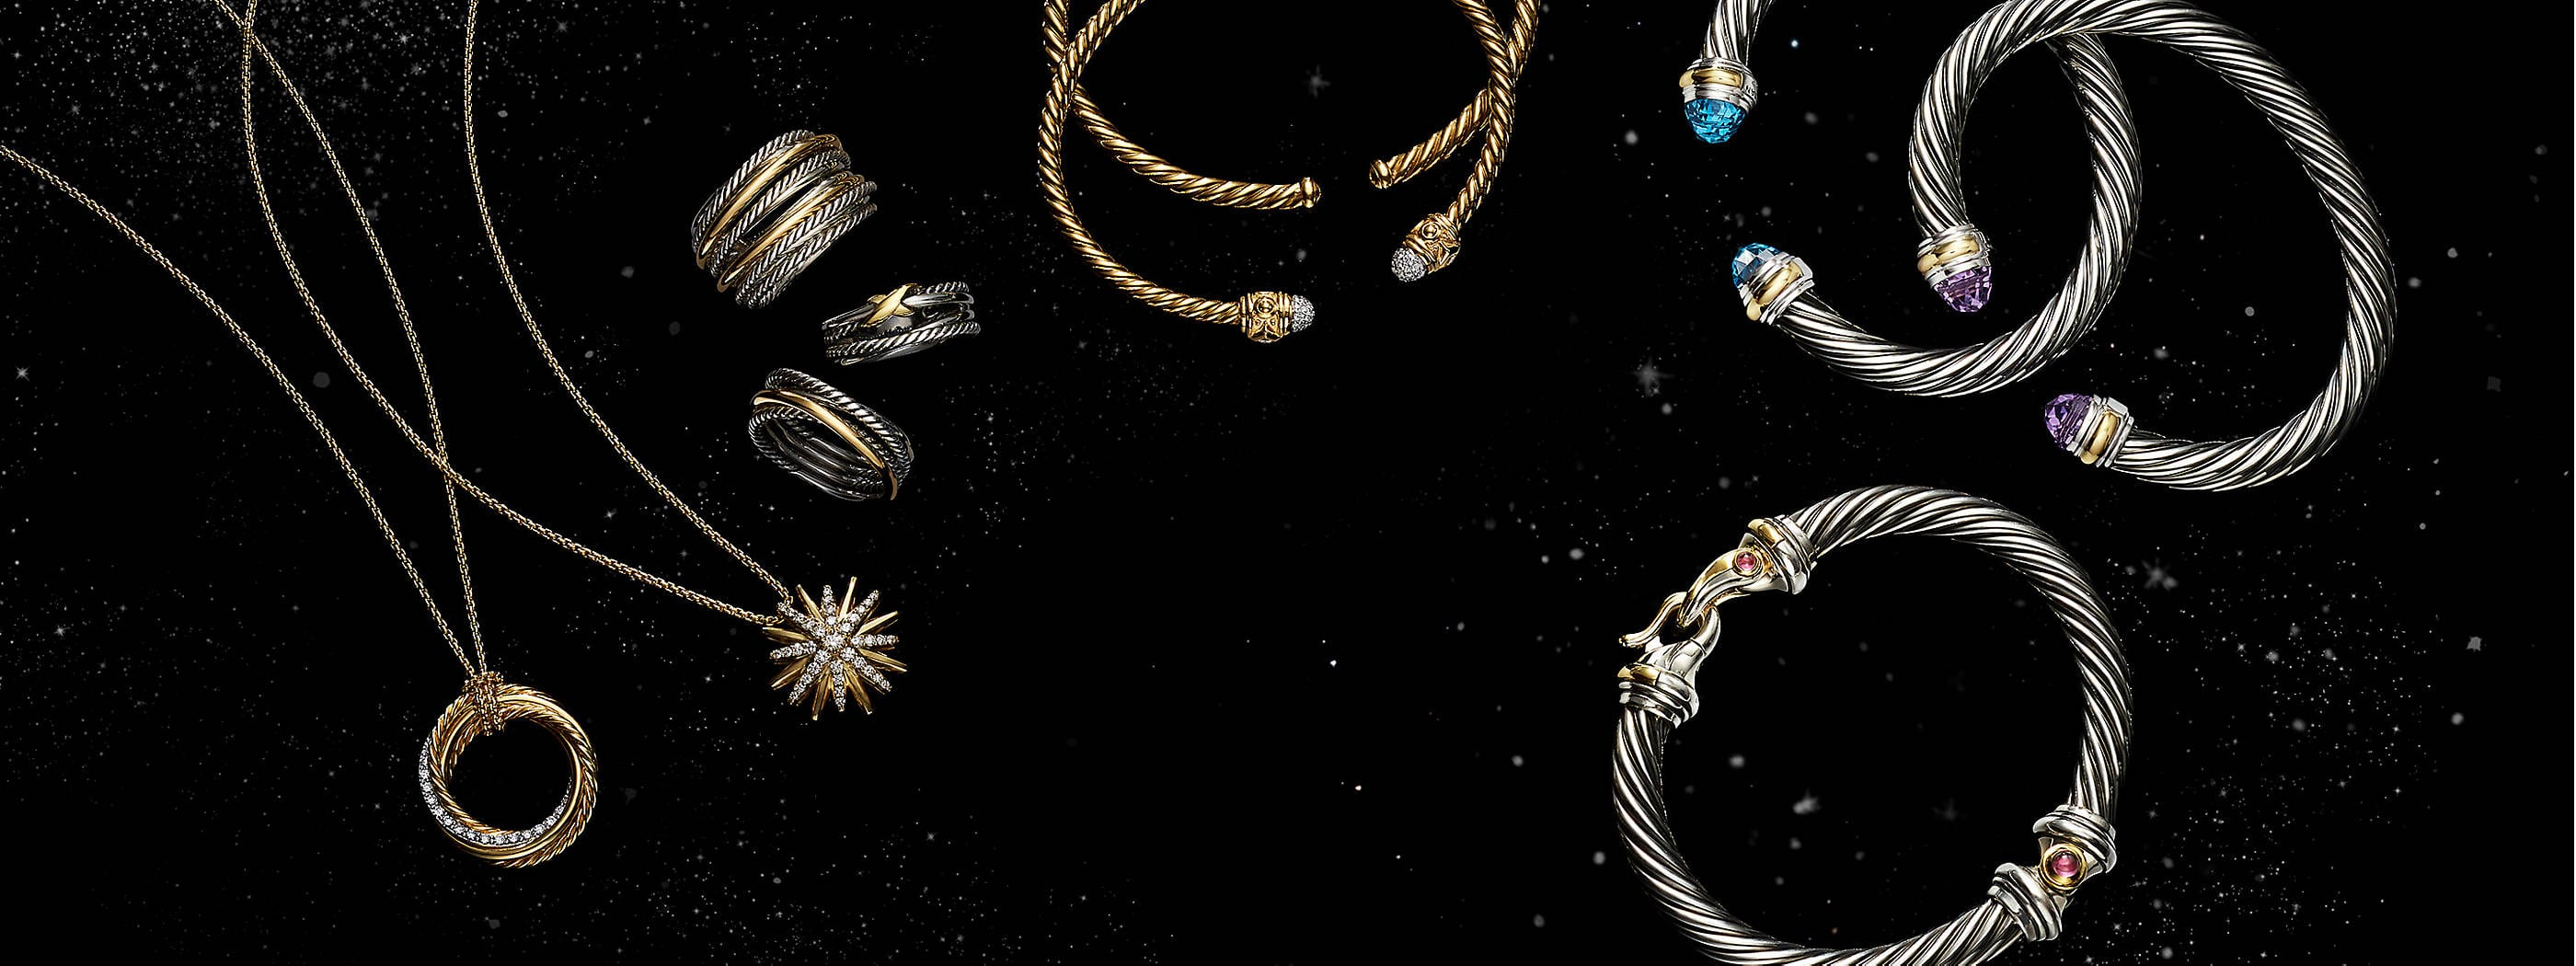 A color photo shows an overhead shot of a horizontal stack of five David Yurman bracelets from the Helena, Stax, Pure Form and Pavéflex collections placed atop a purple stained-glass panel by Brian Clarke with illuminated sections. Three of the women's bracelets are crafted from 18K yellow gold with pavé white diamond accents. Two of the women's bracelets are crafted from 18K yellow gold.